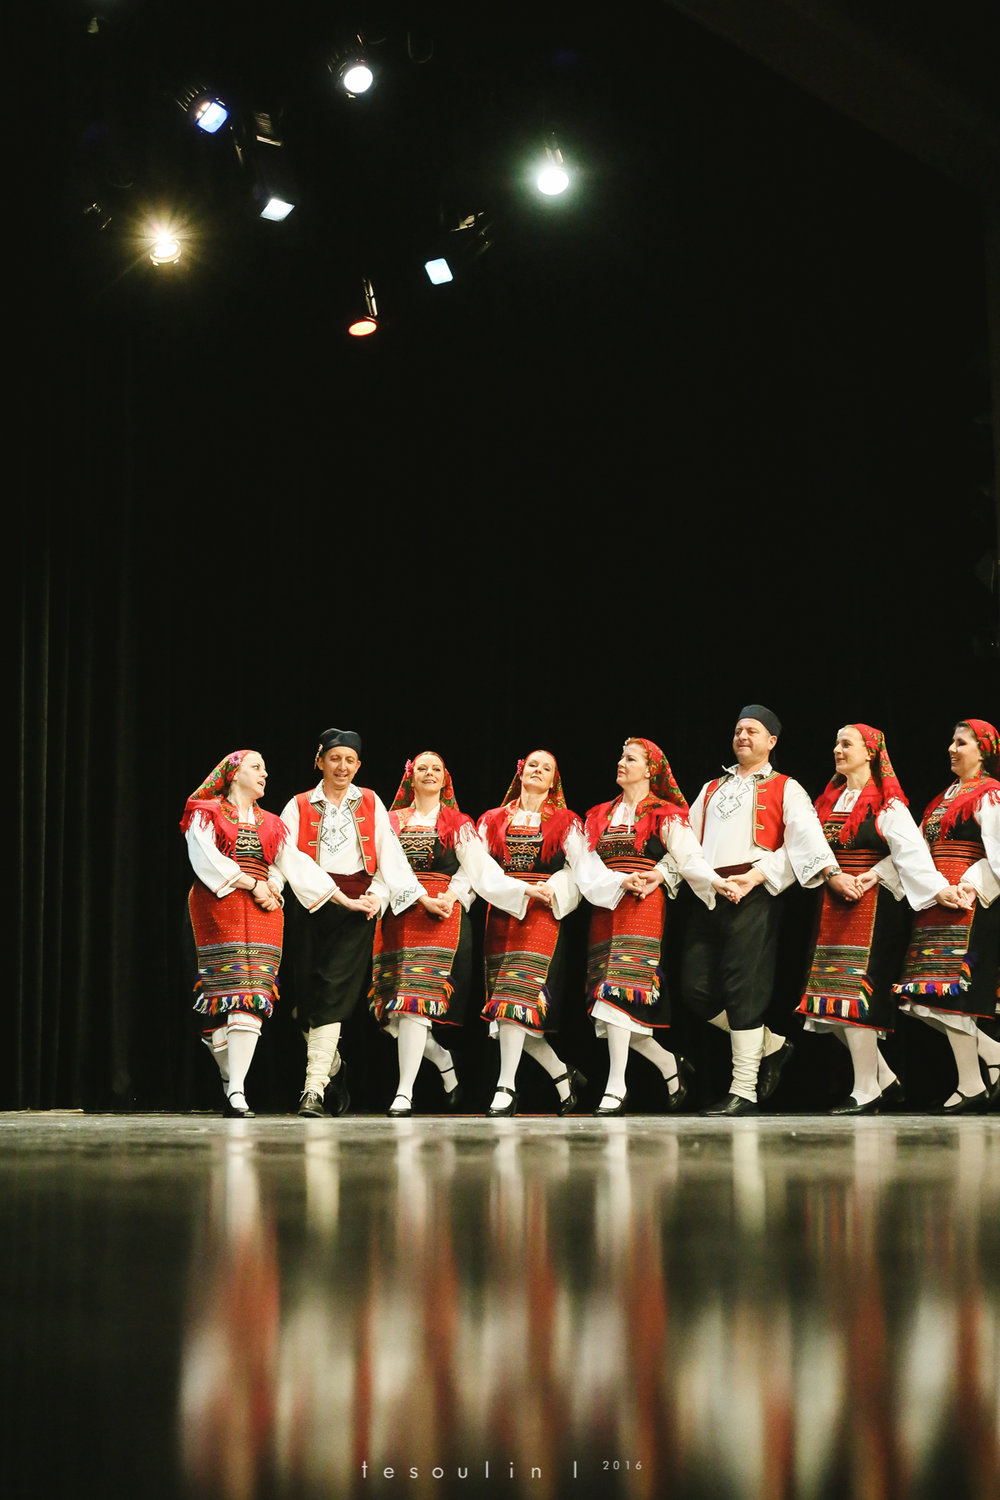 greek dances - tesoulin -7.jpg